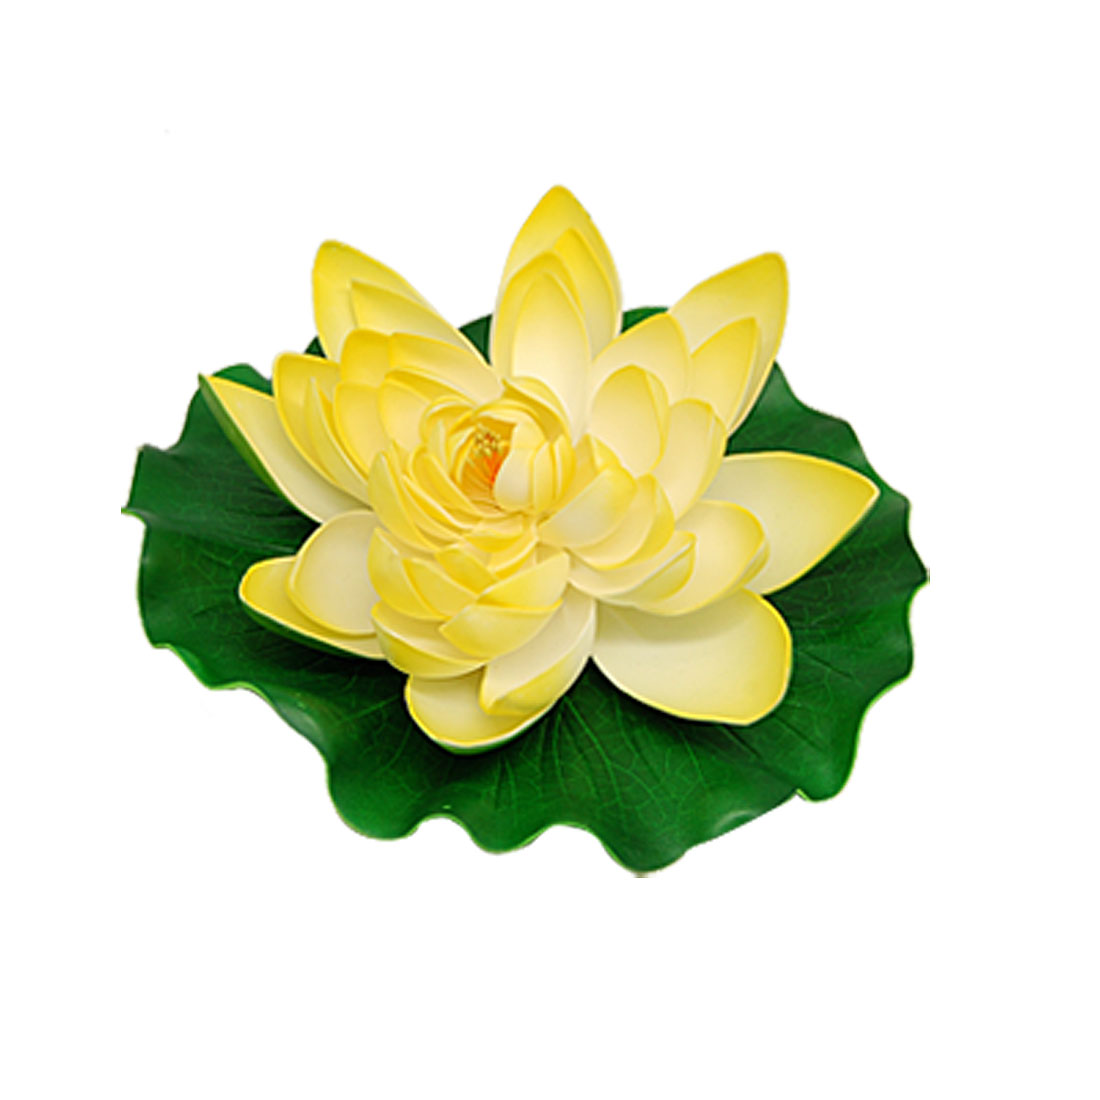 ... /yellow-floating-lotus-decoration-for-aquarium-fish-tank-p-44967.html